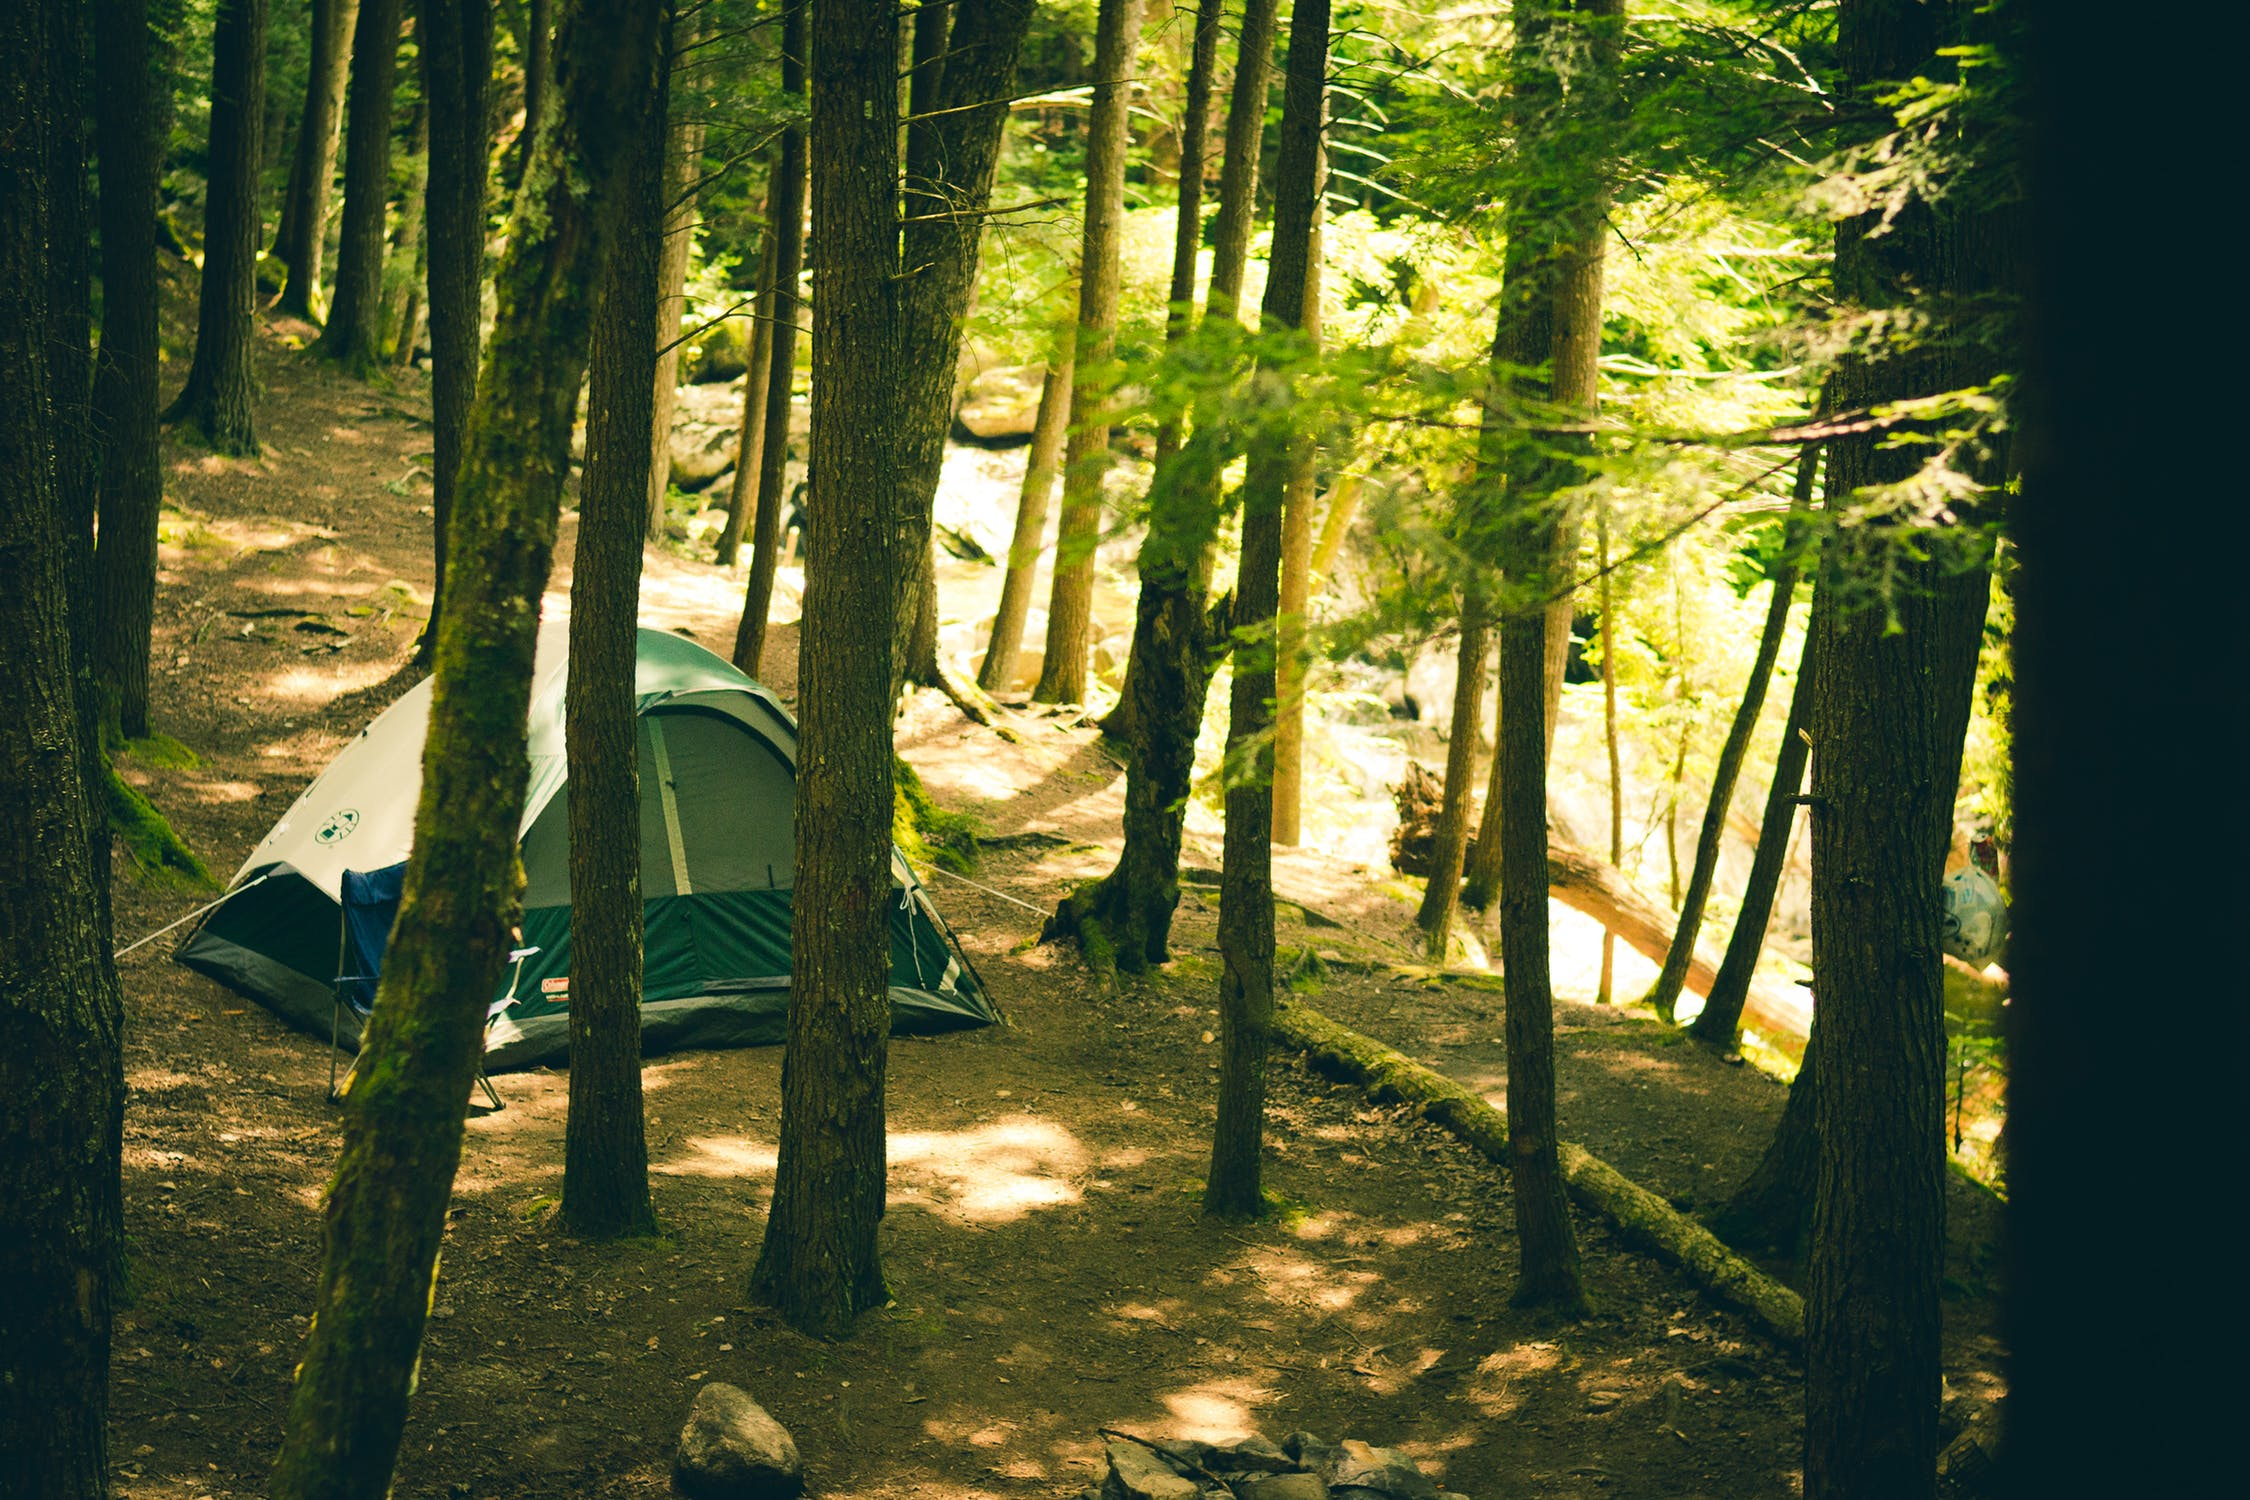 About Us page for camping supplies business